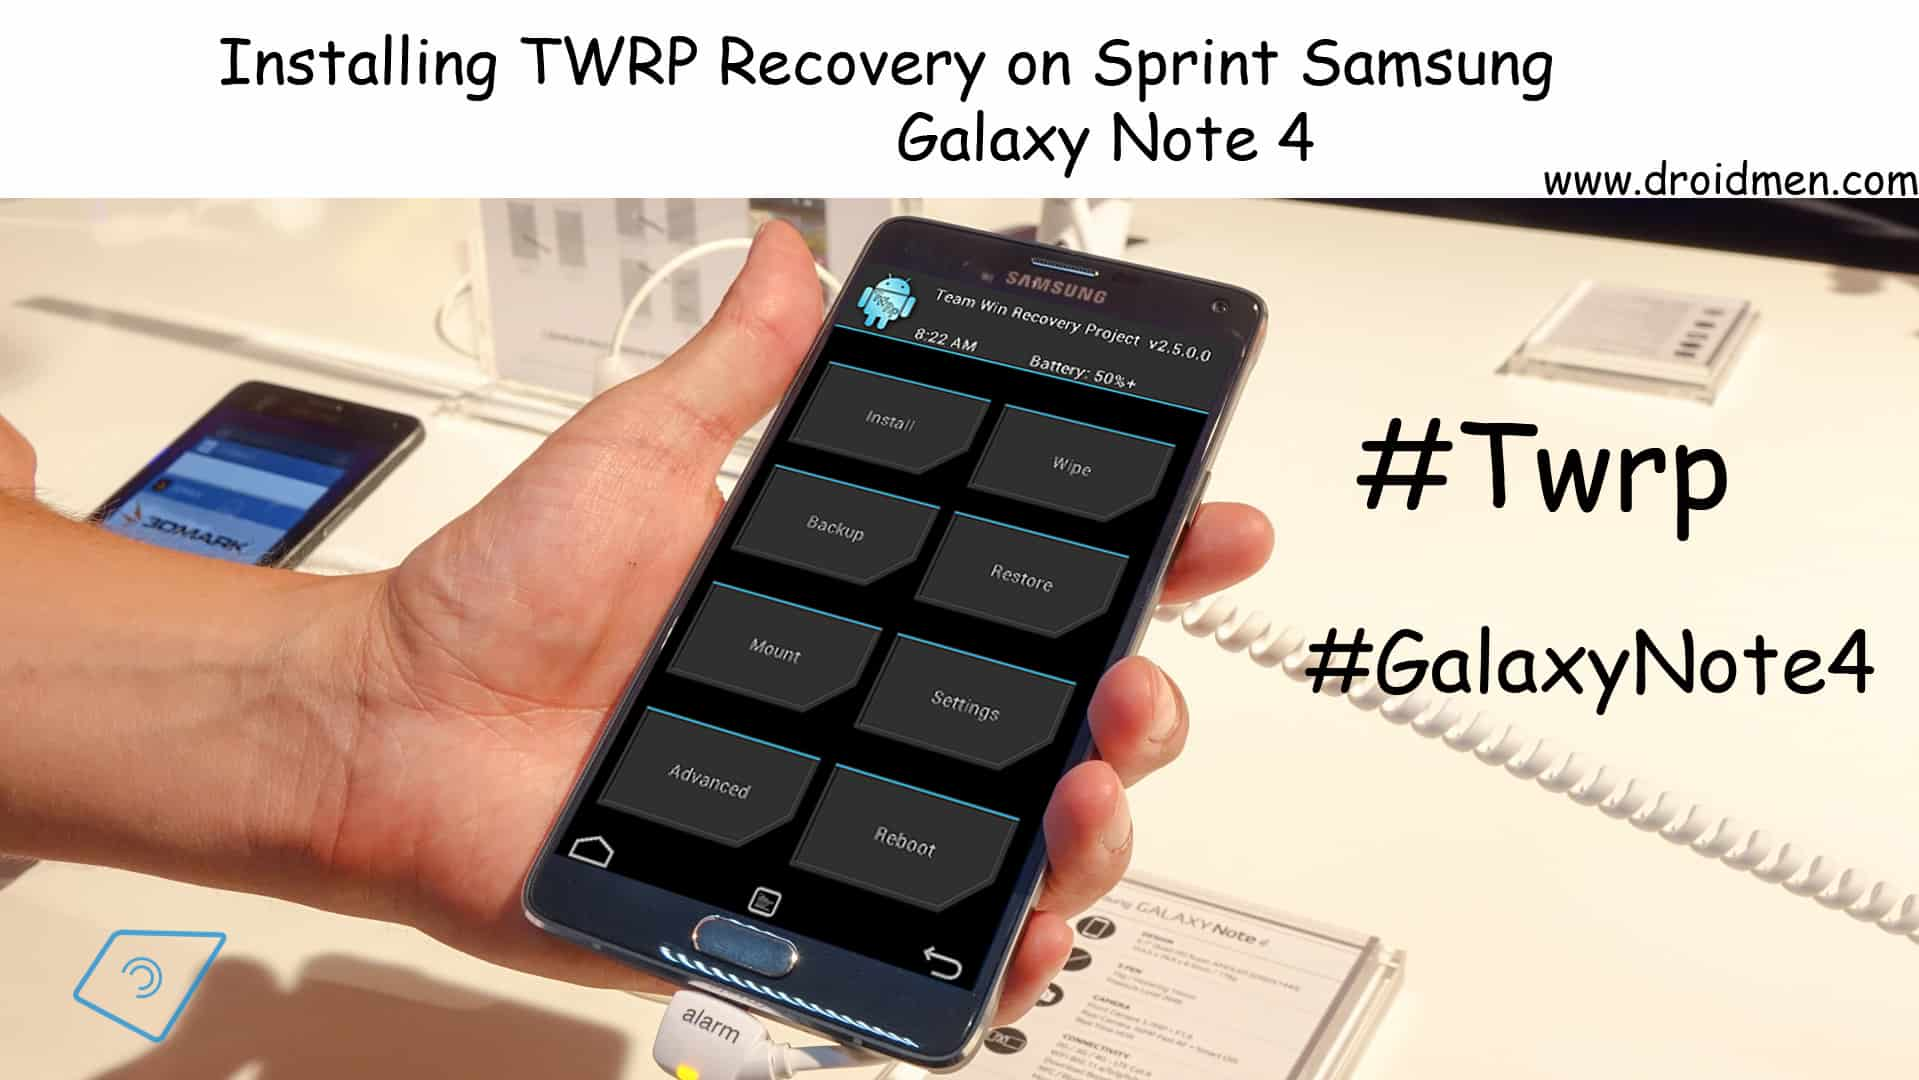 Install TWRP Recovery on Sprint Galaxy Note 4 1